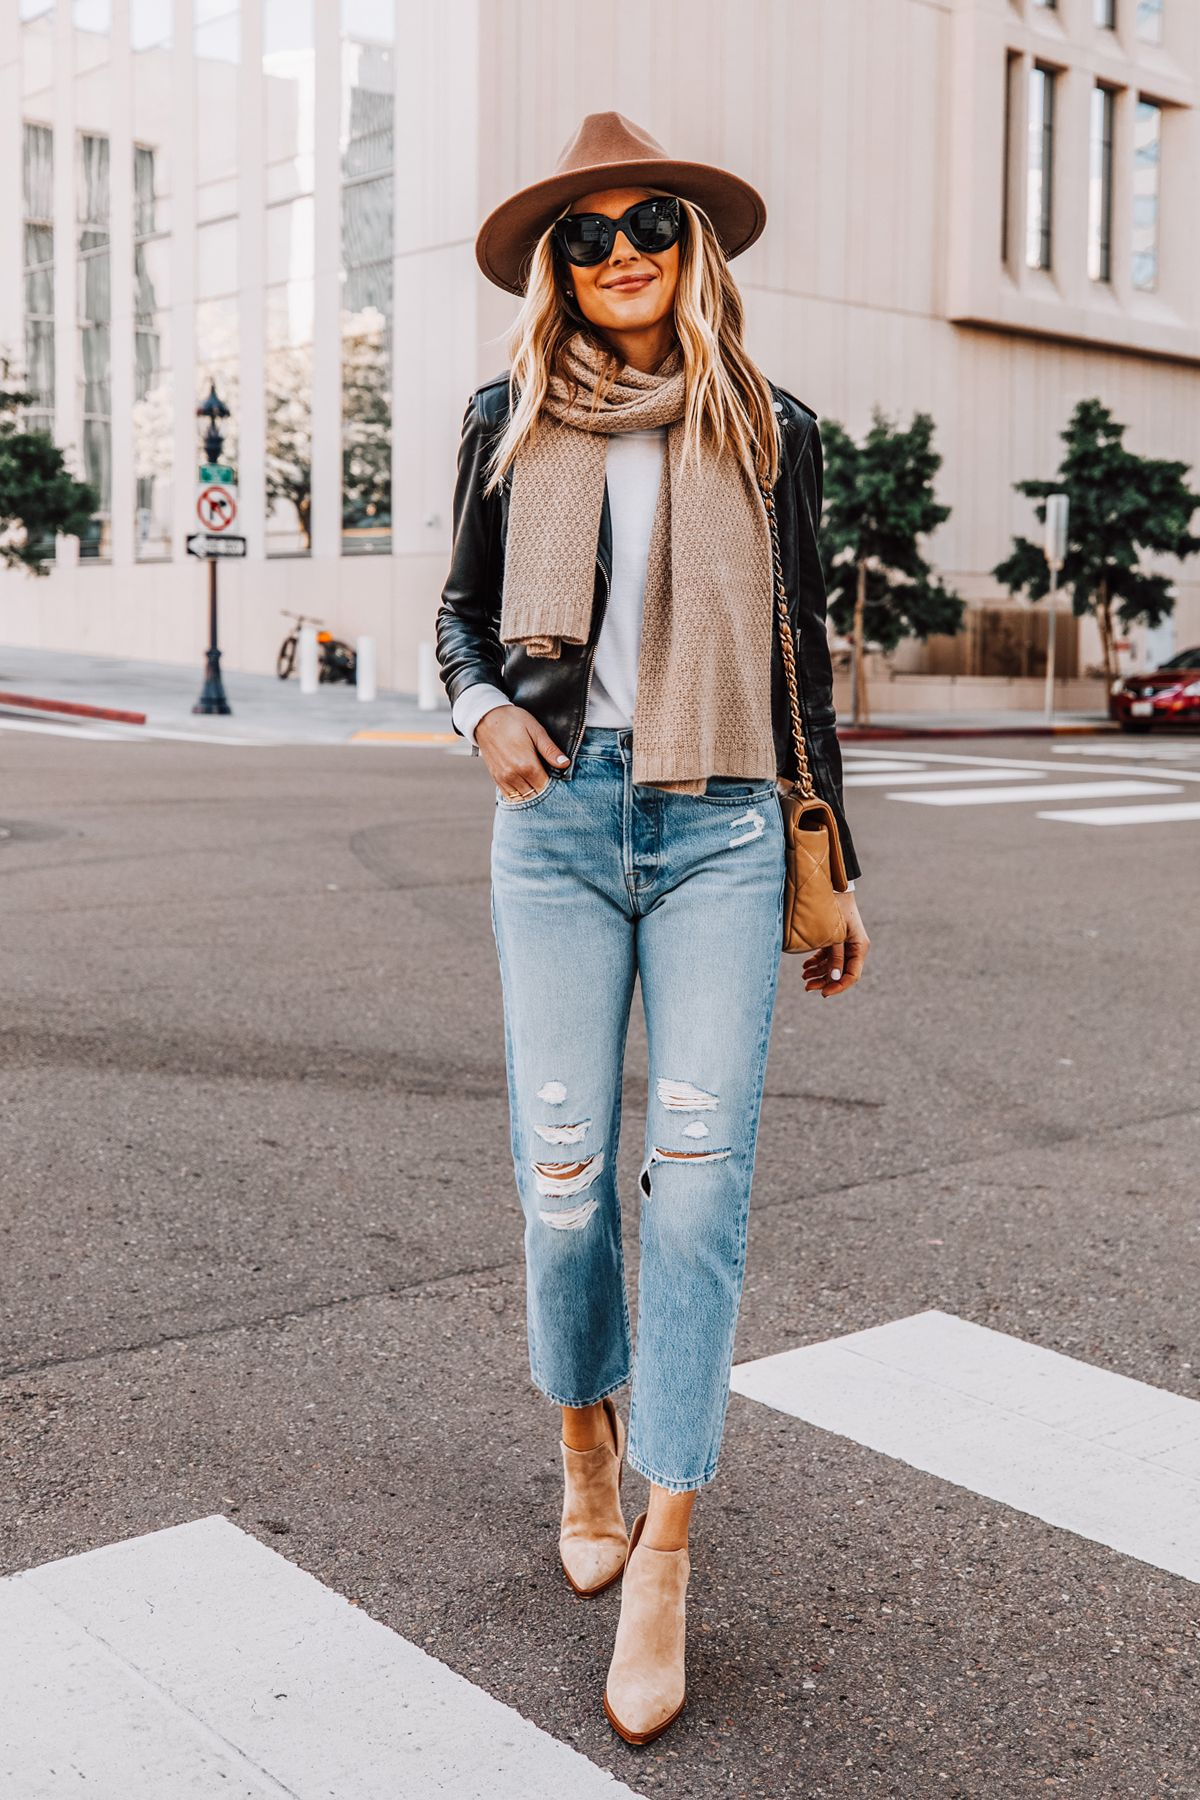 How to Style a Black Leather Jacket For a Cold Winter Weekend | Fashion Jackson